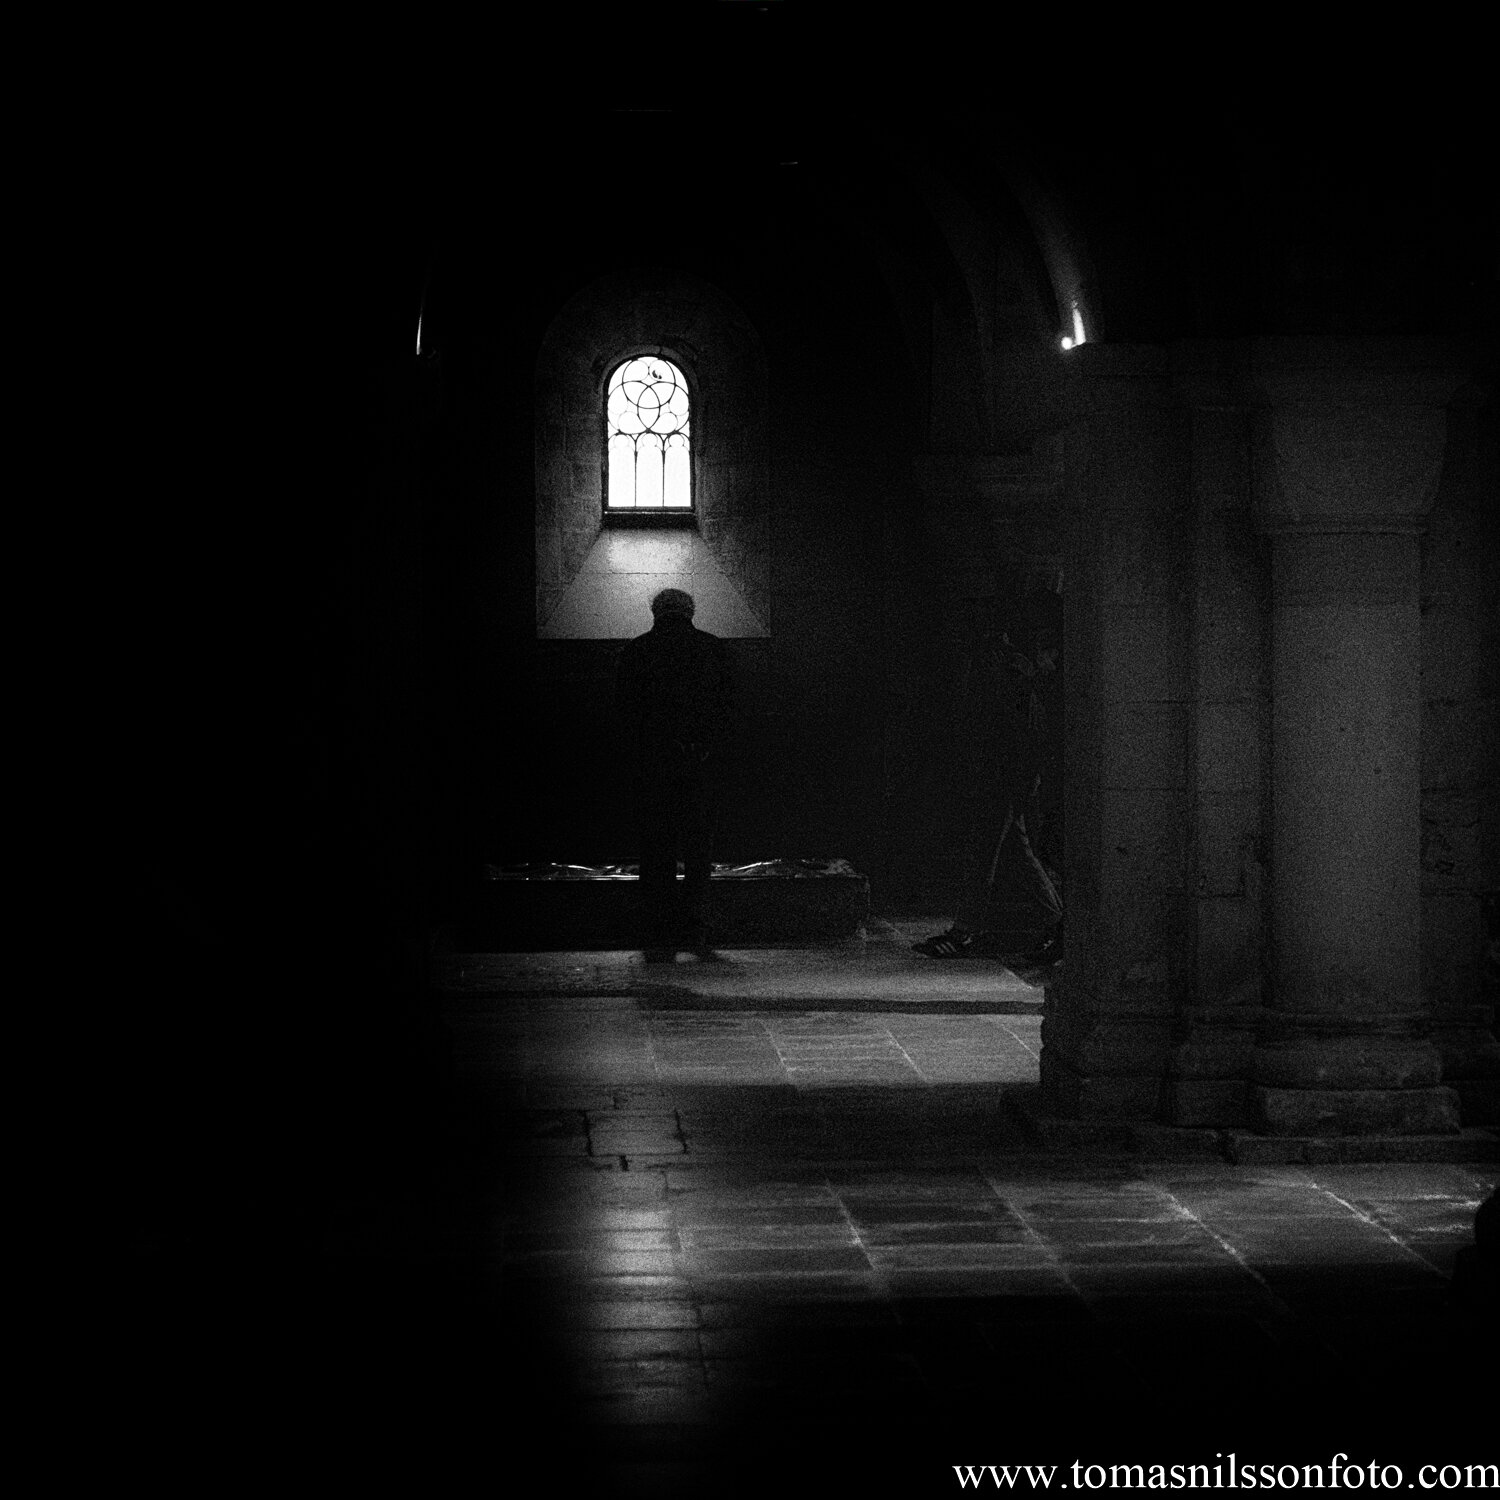 Day 304 - October 31: A Ghost in the Crypt